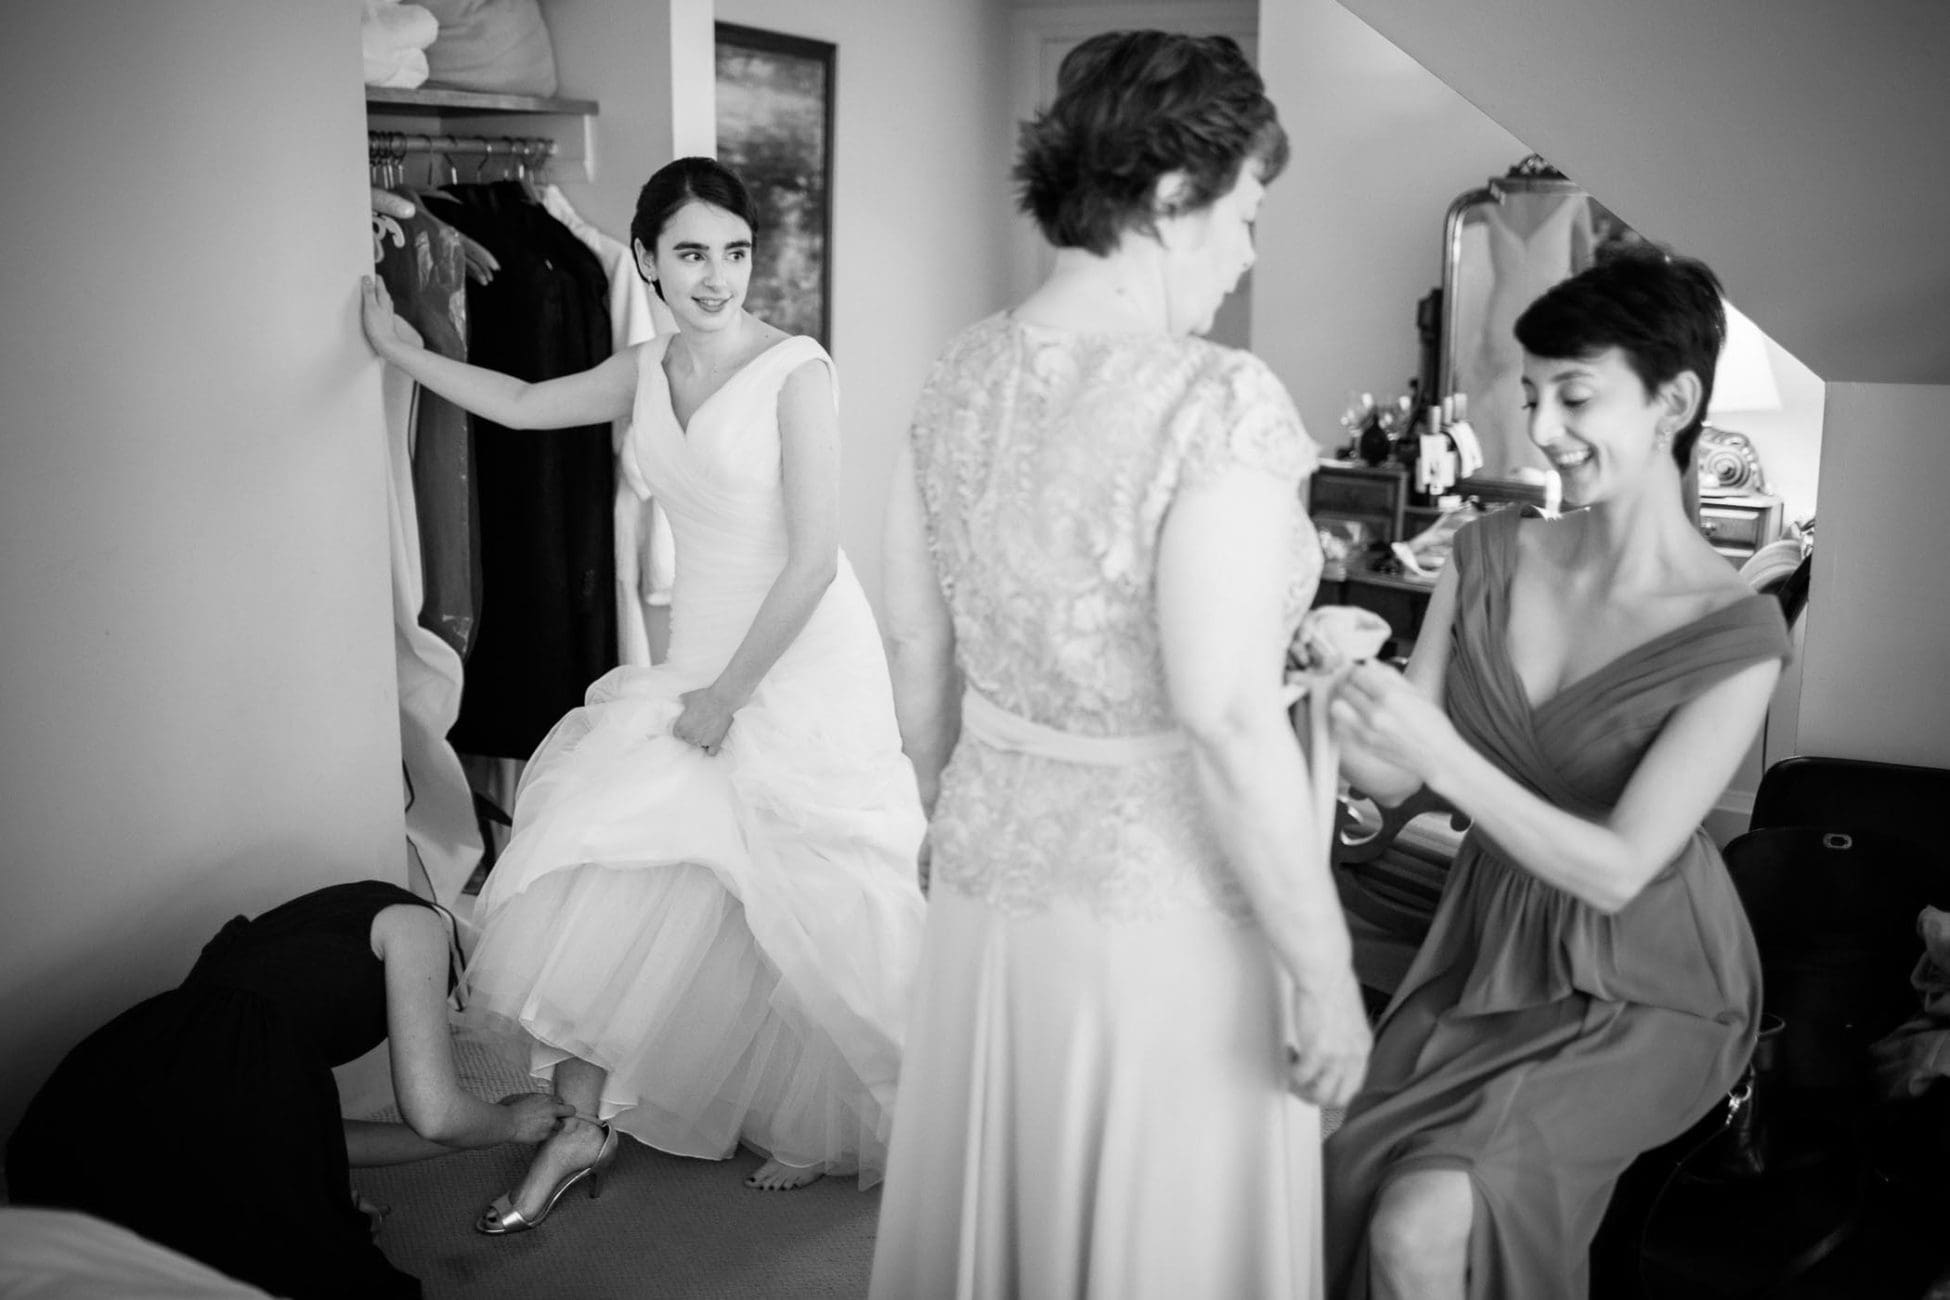 A woman is helping bride get ready by fastening her shoe straps at the Glenerin inn and spa in mississauga